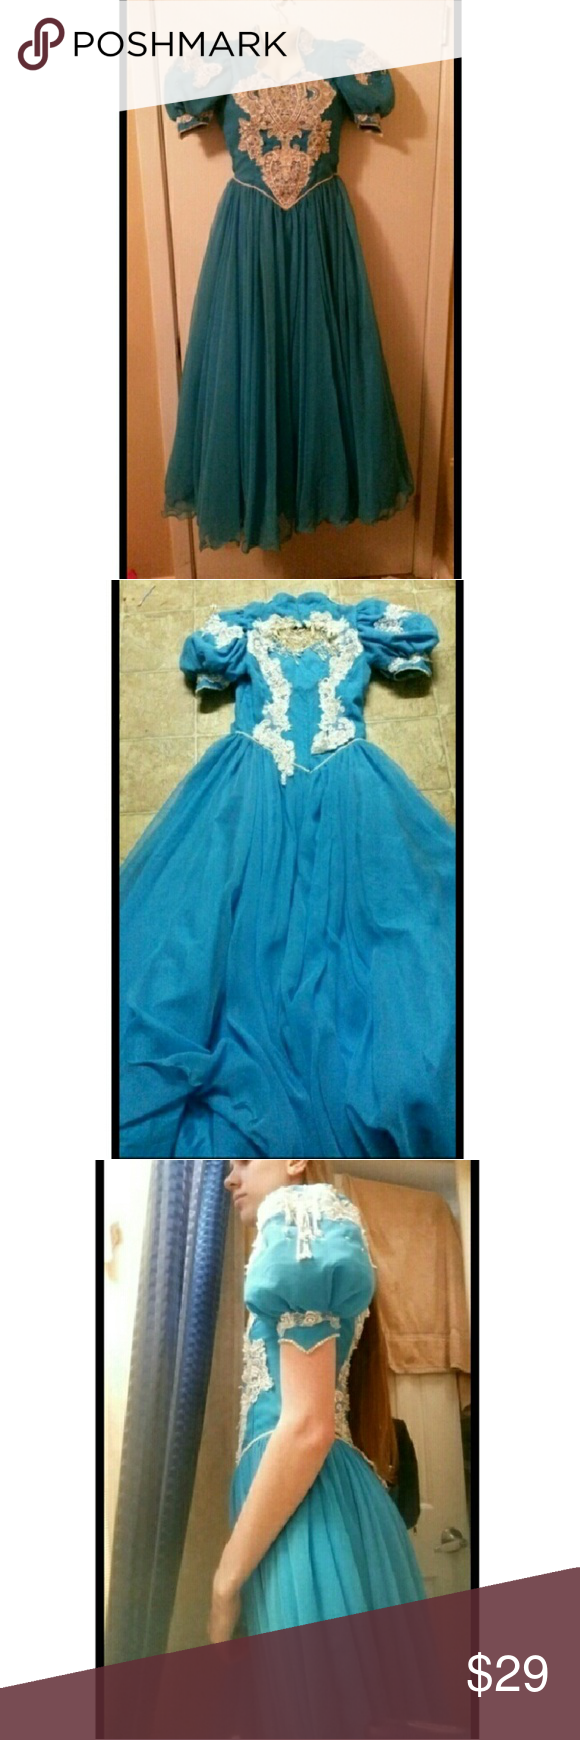 Embroidered Fancy Ball Gown / Quinceañera Dress I don't know much at all about it. It doesn't have a tag. I believe it's handmade. I don't know the size, but I wear size 0 - 2 in dresses and it fits me.  Could be a ball gown, Quincea?era dress, 80s style prom dress,  etc  There's lots of beads sequins,  rhinestones,  & embroiderey on the front, back & sleeves. The sleeves are poofy at the top, then skinny & pointed at the bottom. Some of the beads / sequins are loose. Dresses Prom